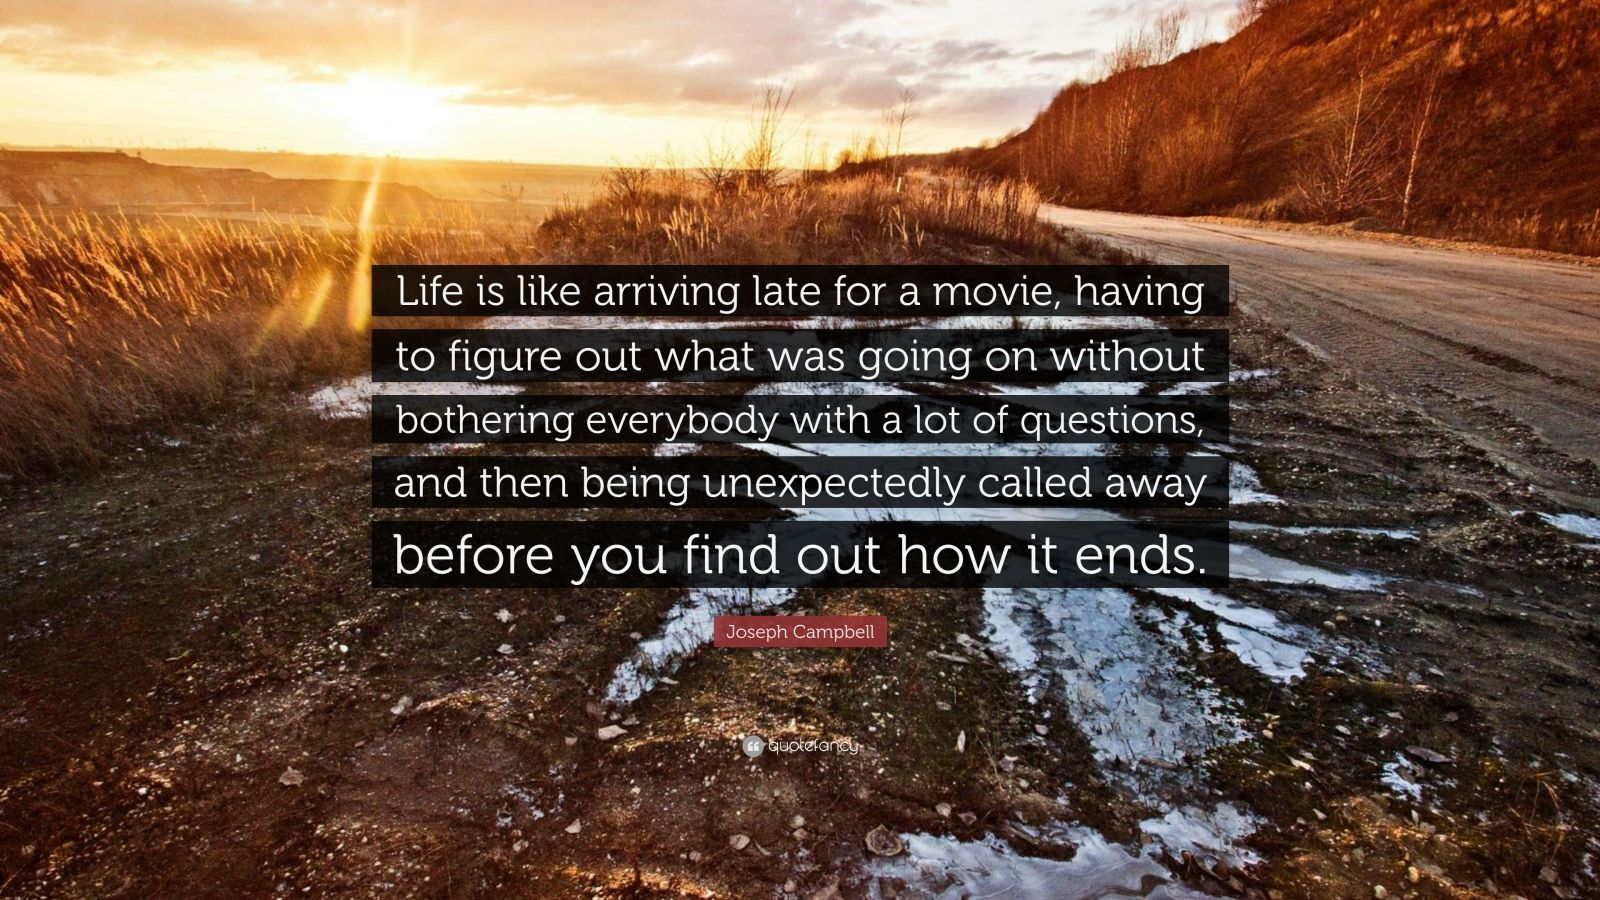 """Joseph Campbell Quote: """"Life is like arriving late for a movie, having to figure out what was going on without bothering everybody with a lot of questions, and then being unexpectedly called away before you find out how it ends."""""""